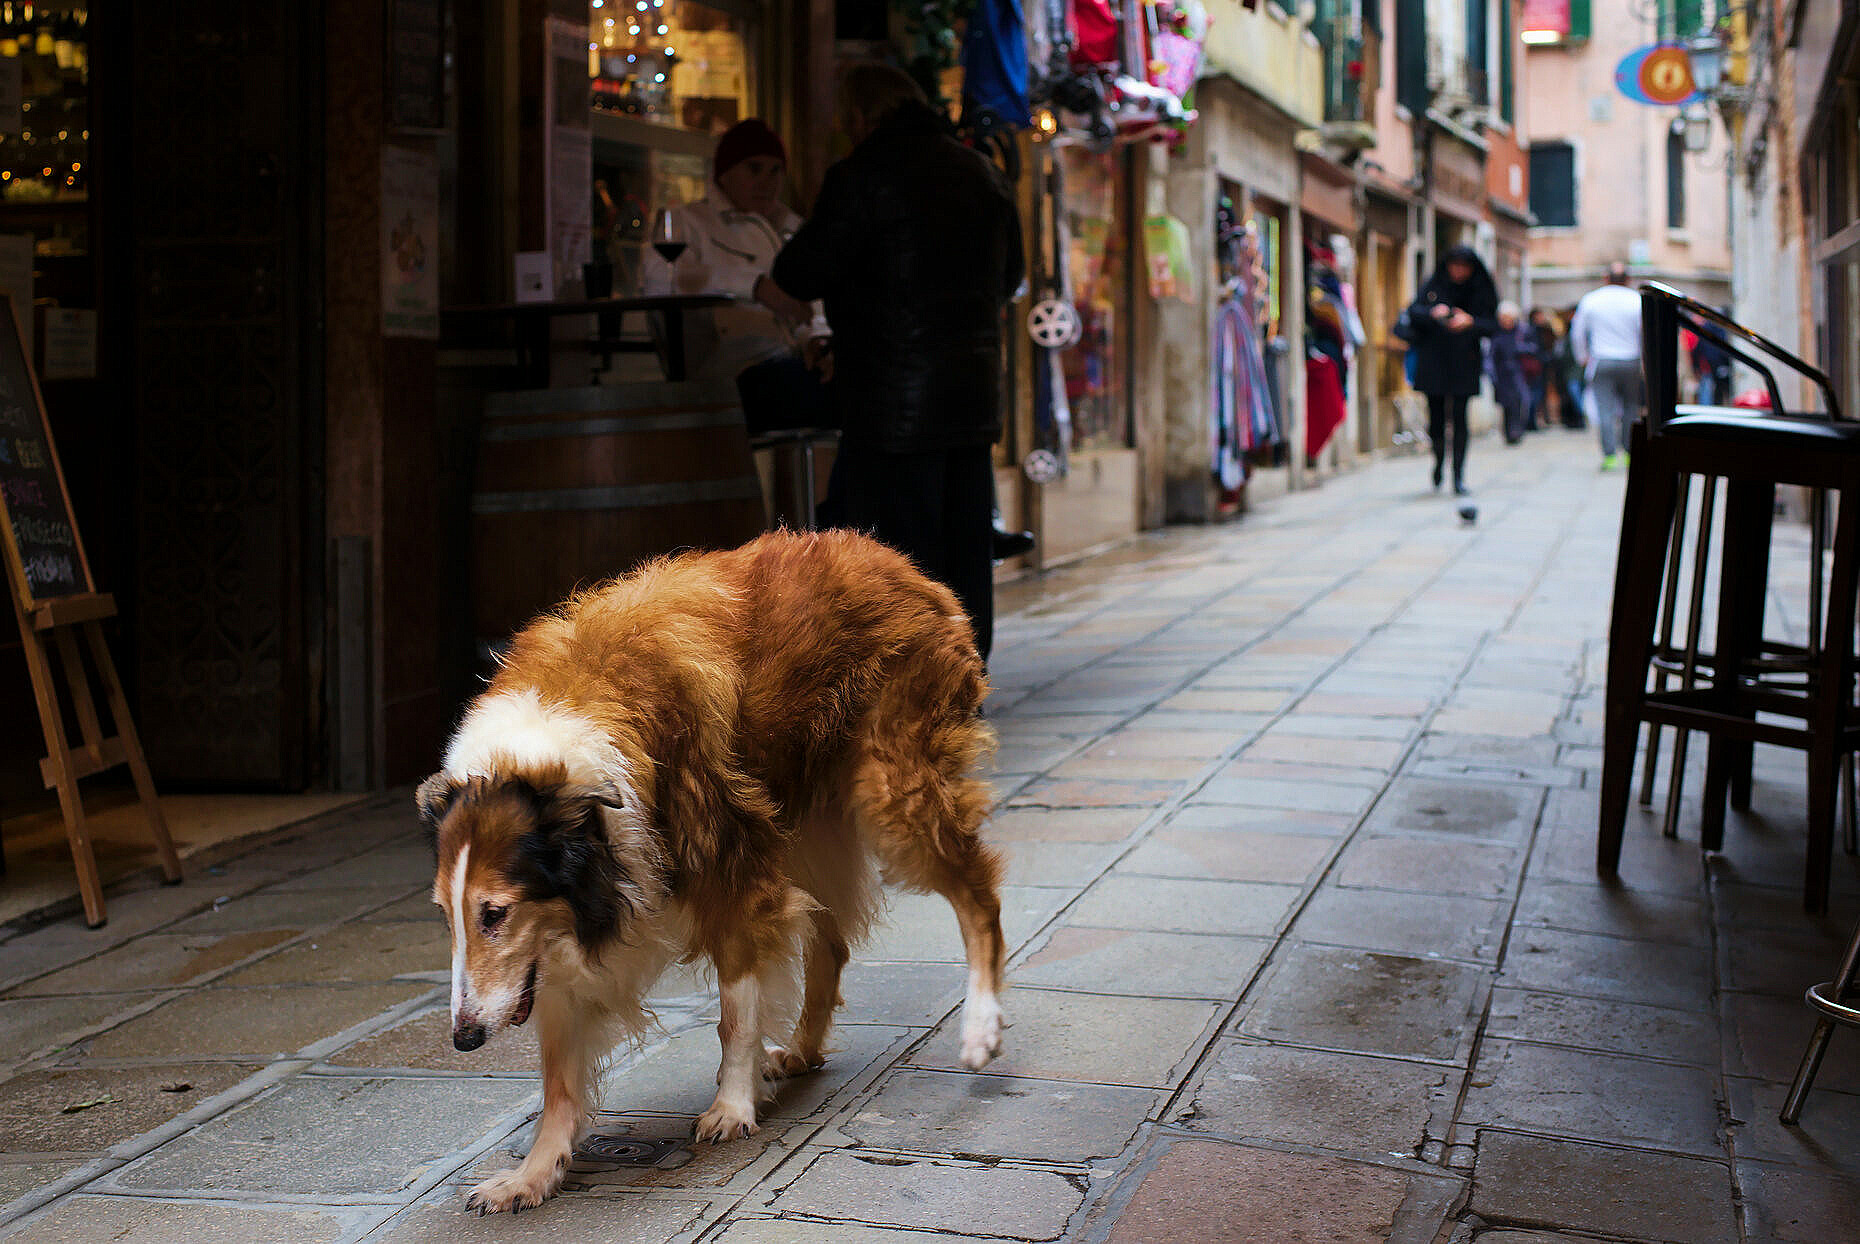 Penny, a scotch collie, wandering the alleyways of Venice after the death of her owner.